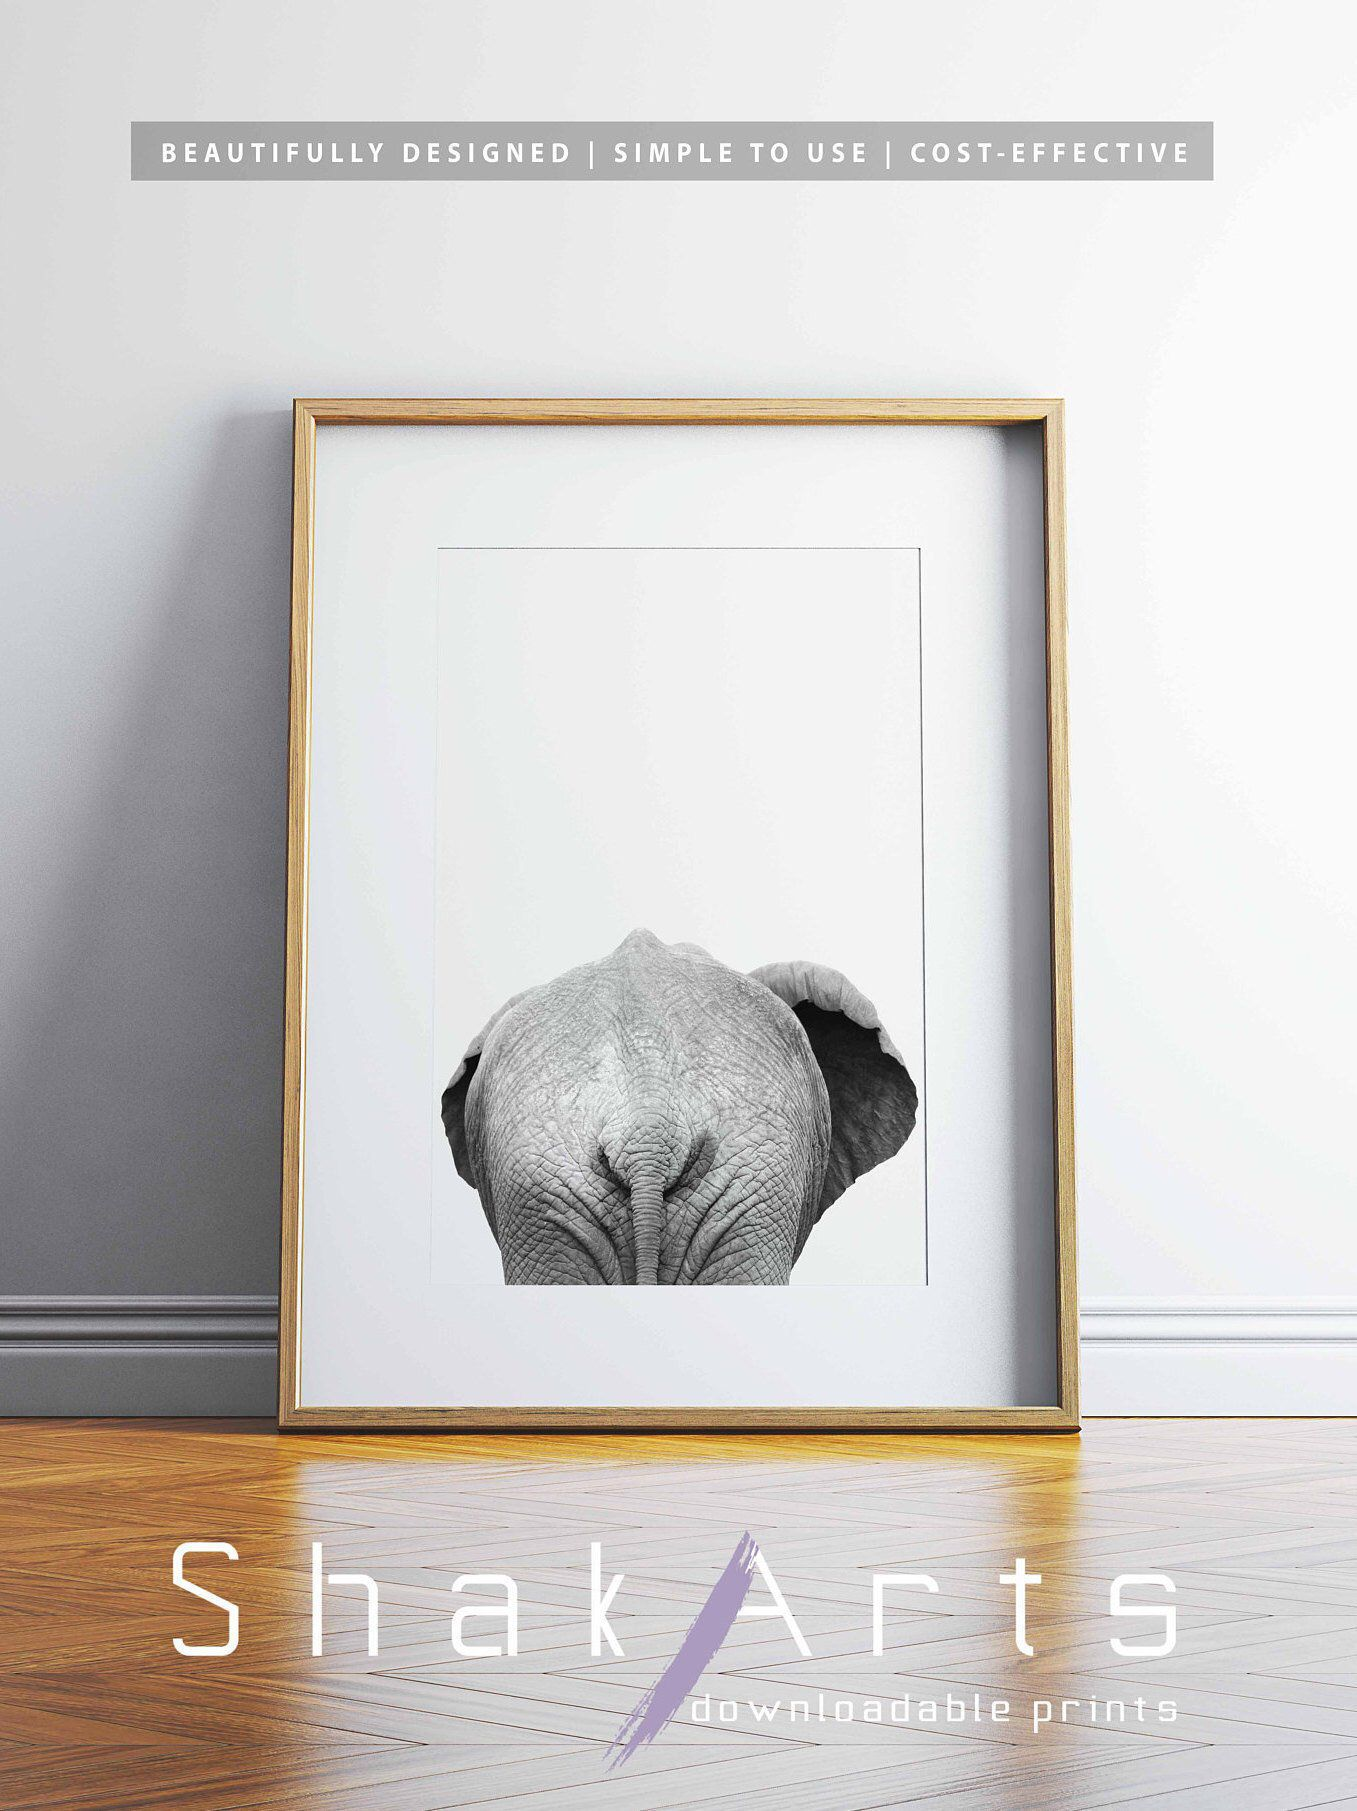 Elephant Print Funny Bathroom Art Elephant Decor Elephant Etsy In 2020 Funny Bathroom Art Elephant Wall Art Elephant Decor